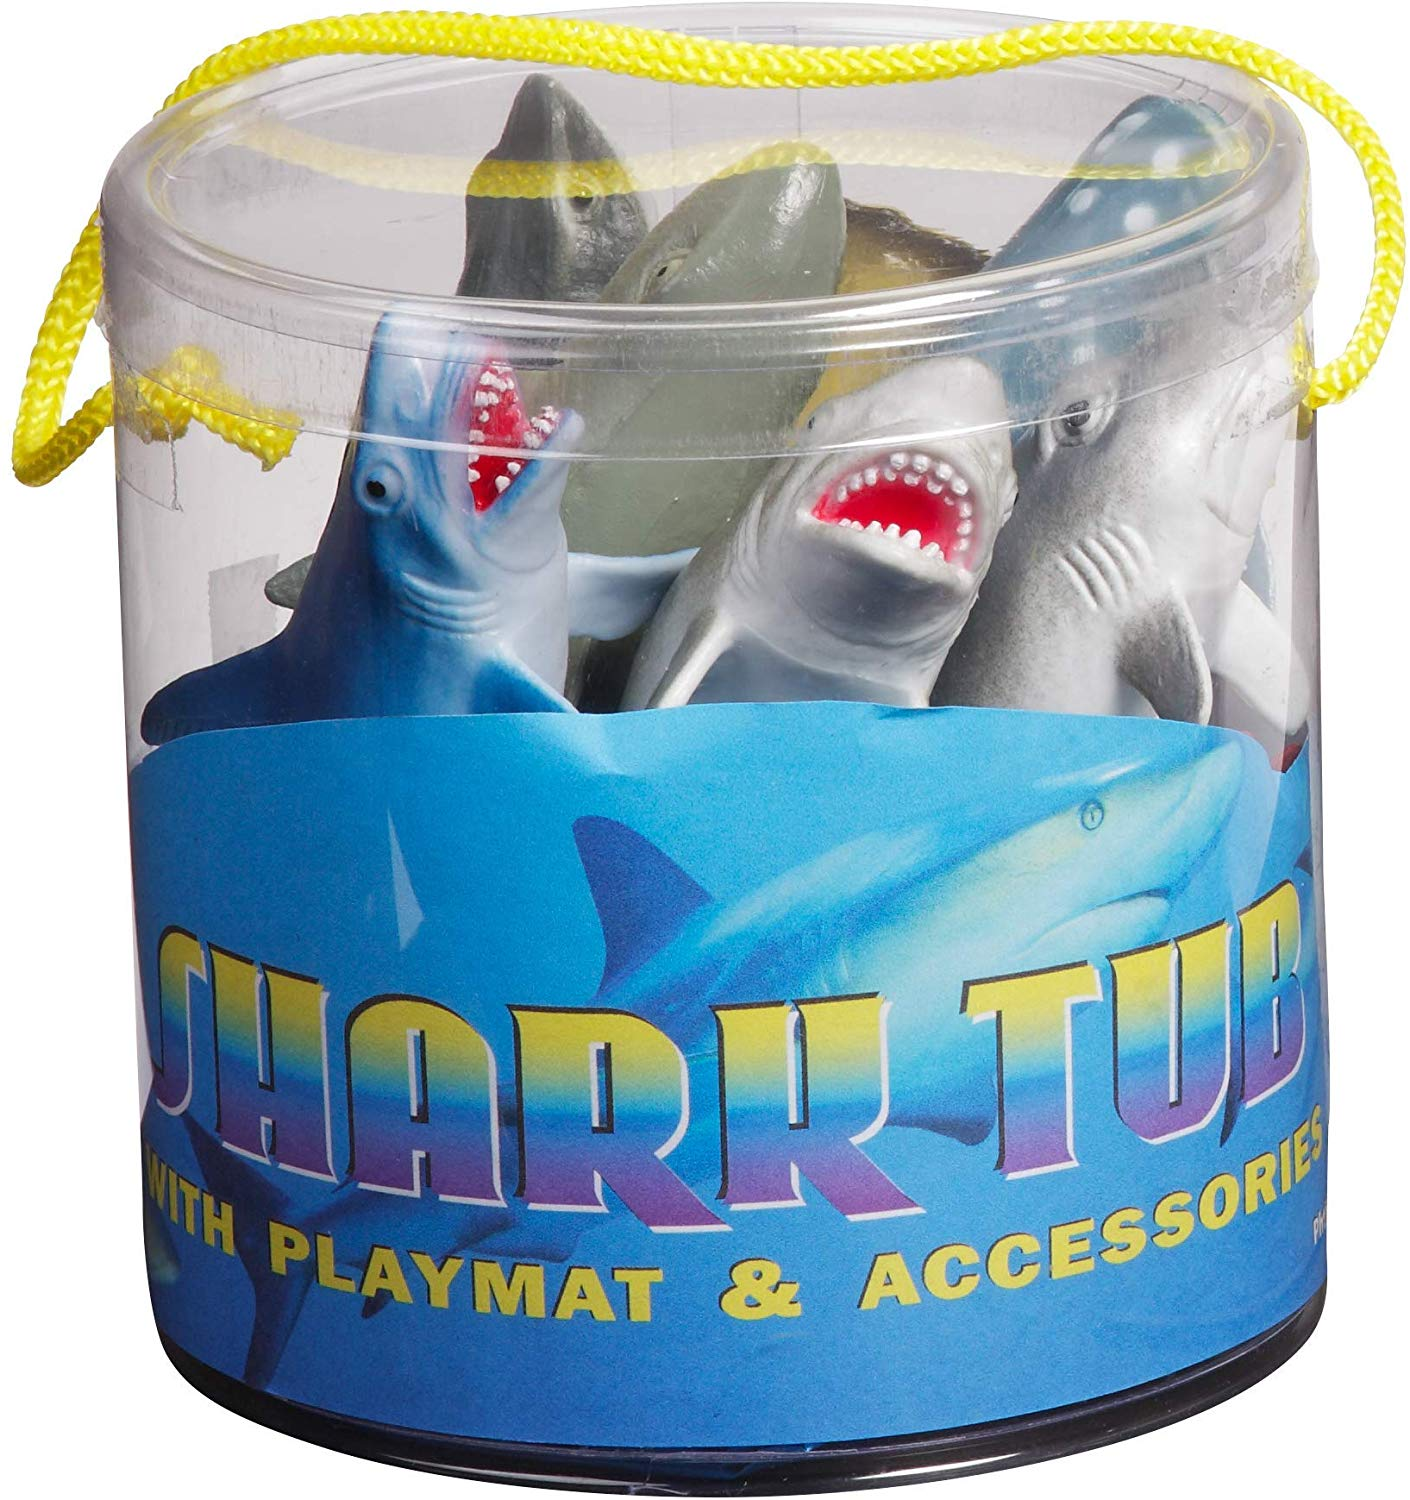 81XUlLzGNvL. AC SL1500 - Best Shark Gifts for Shark Lovers 2020 [User Rated]